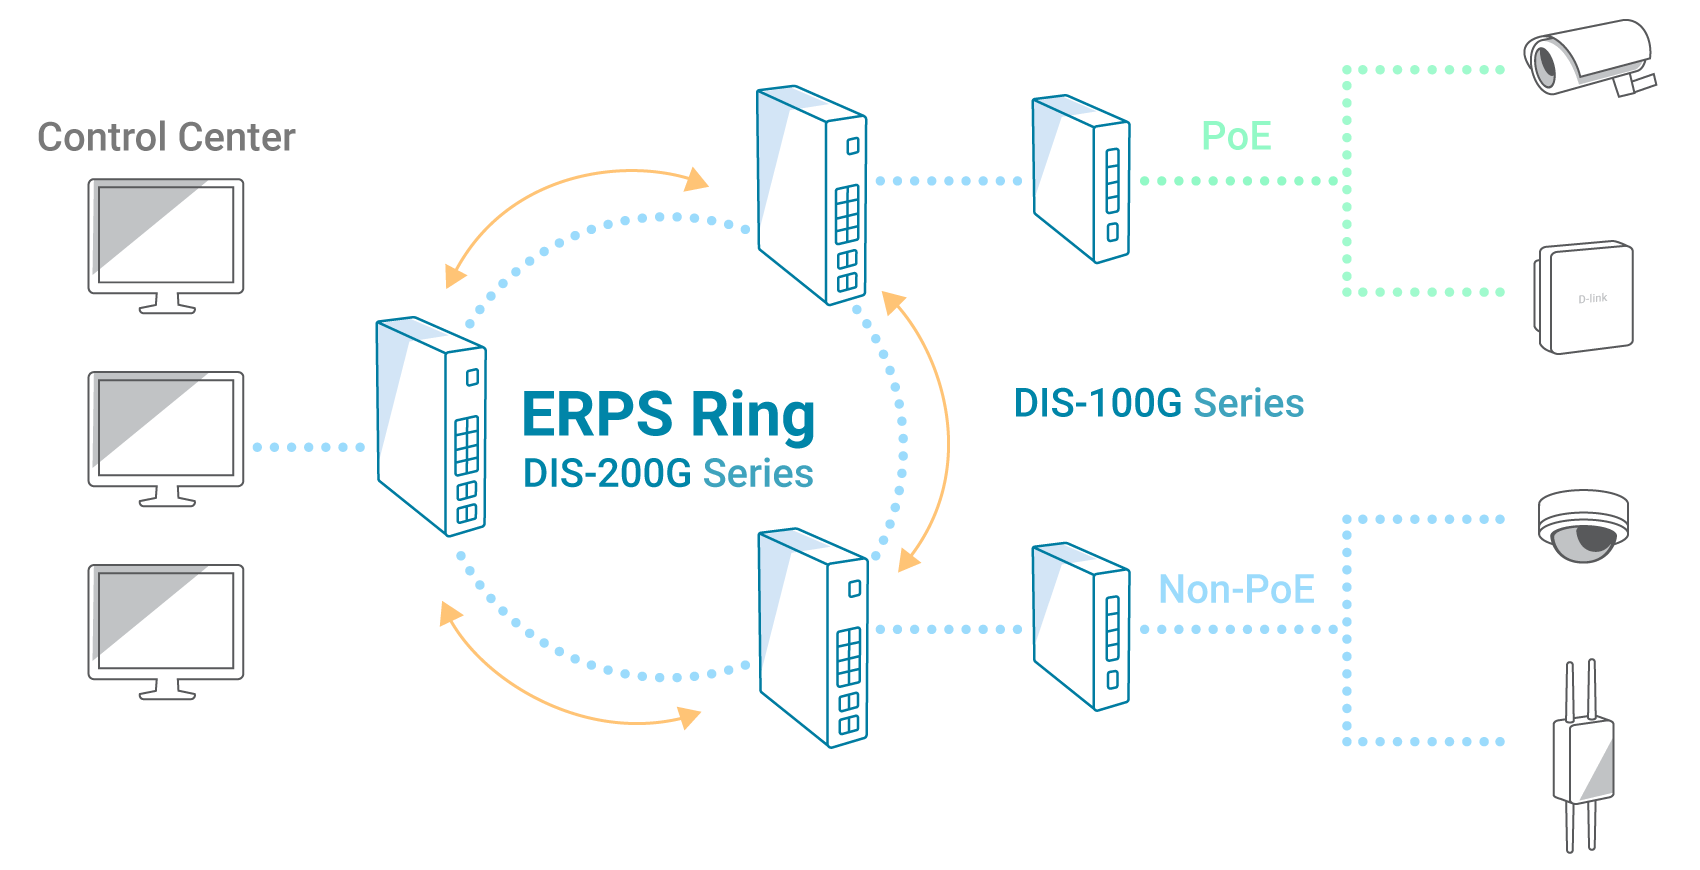 High Availability with Rapid Failover - ERPS Ring